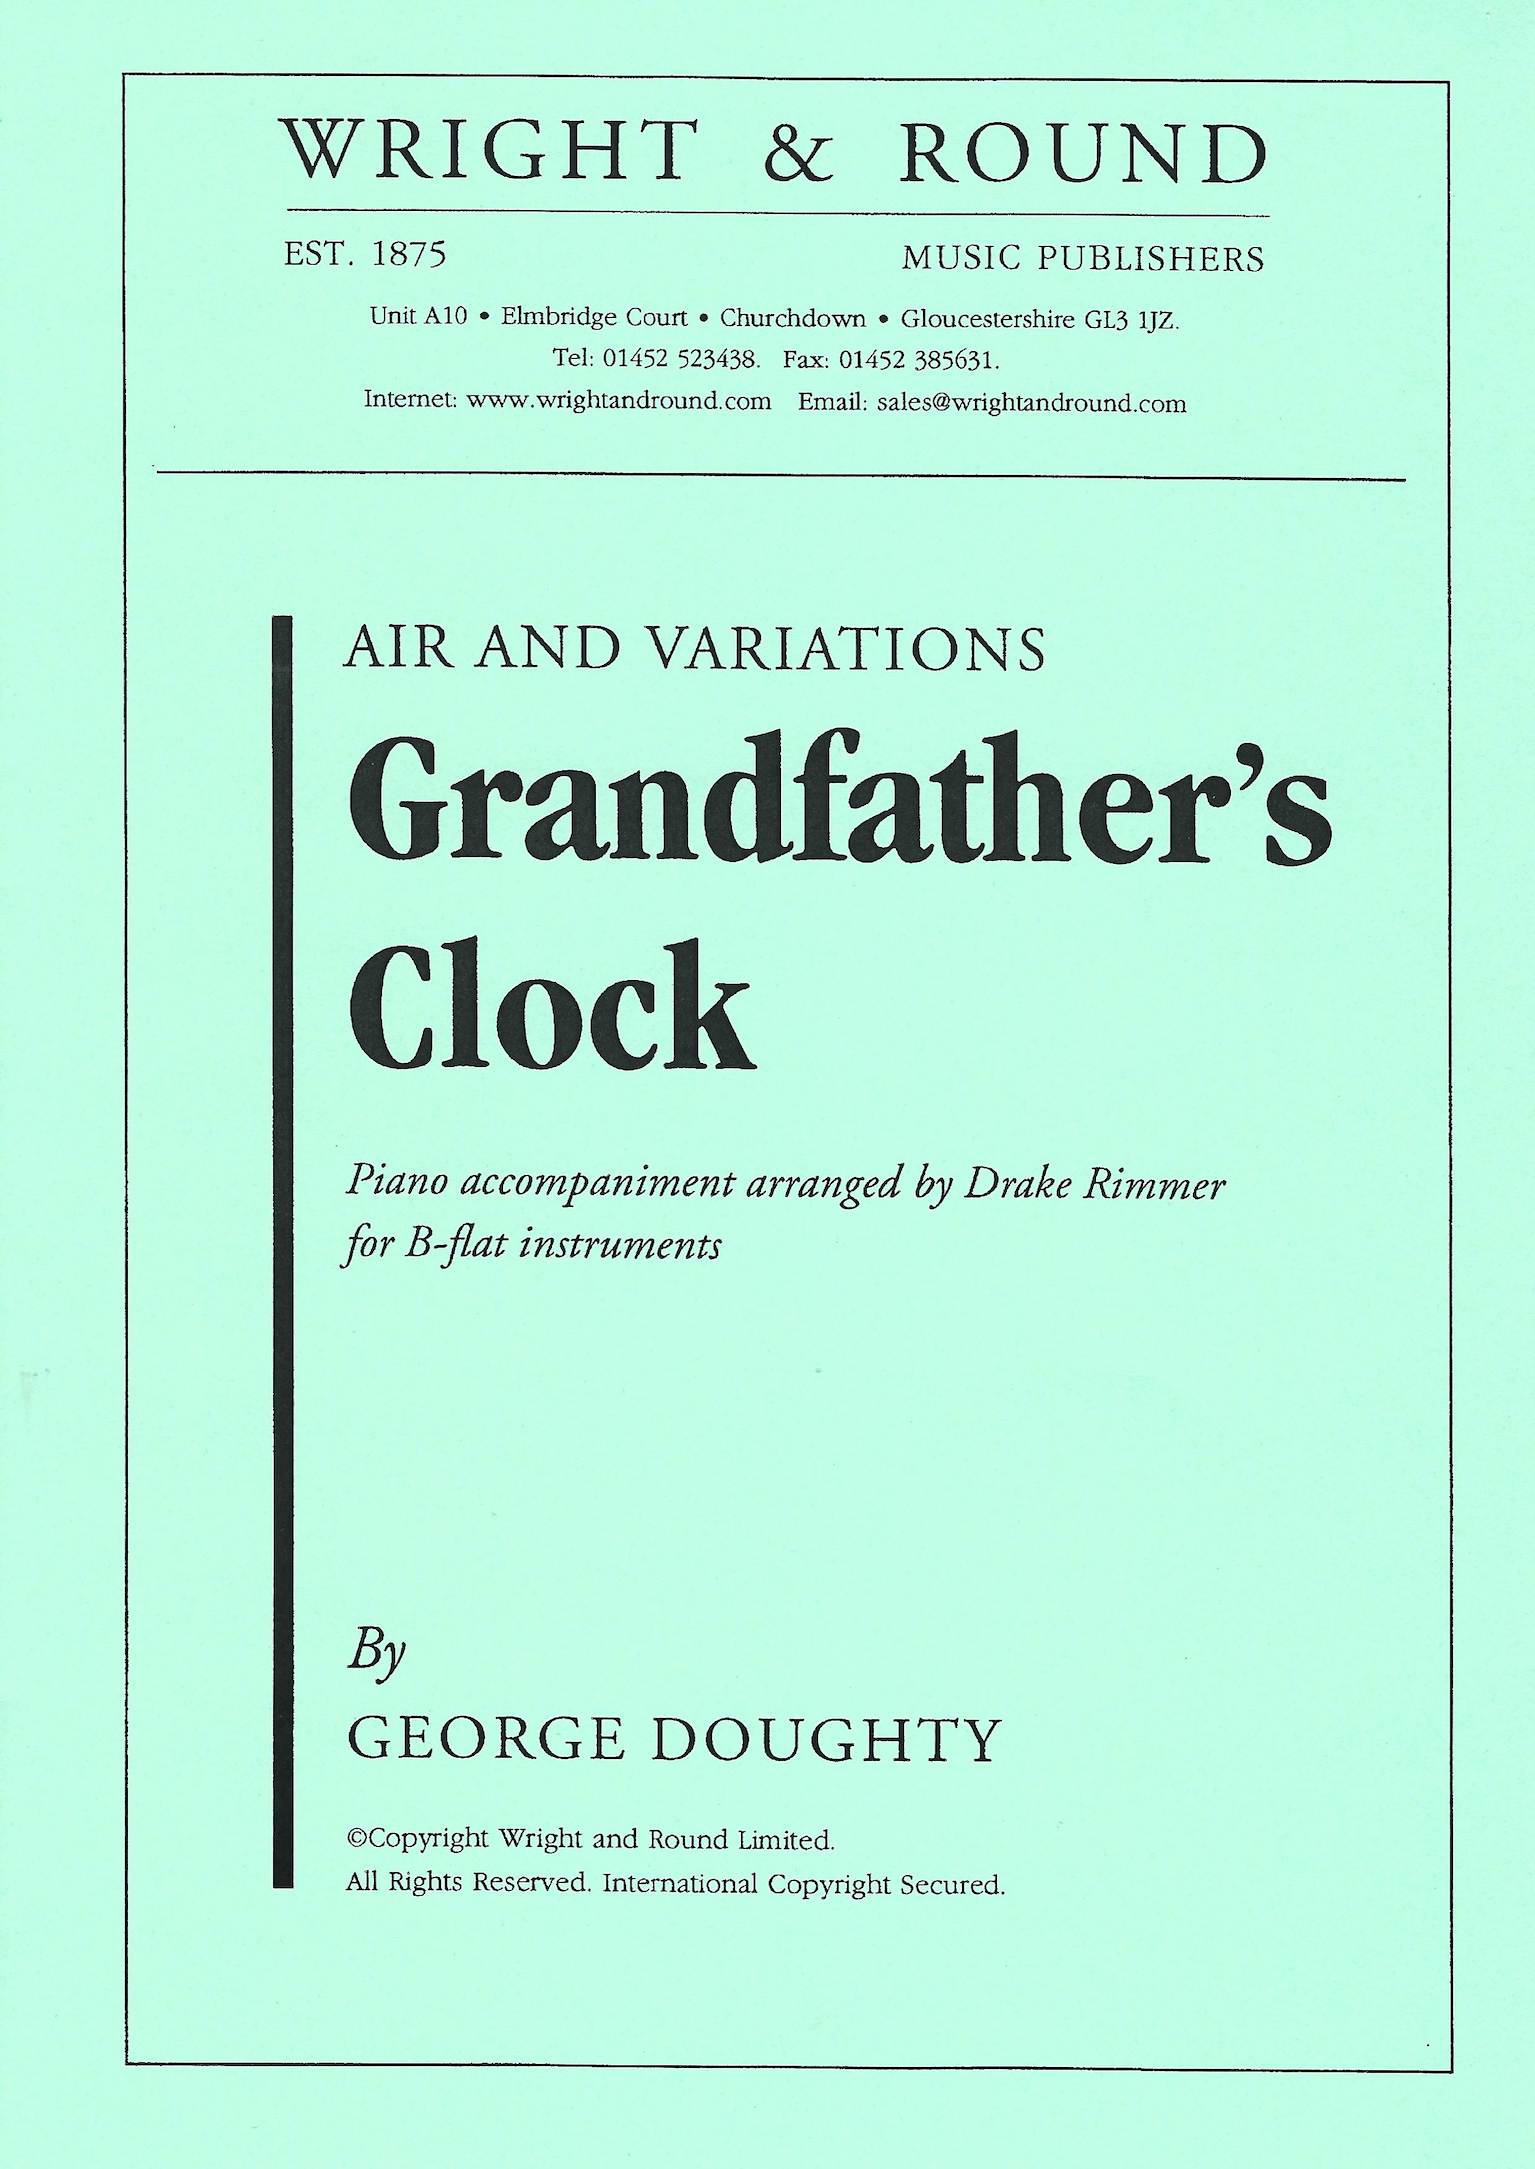 Grandfather's Clock - George Doughty - Euphonium and Piano